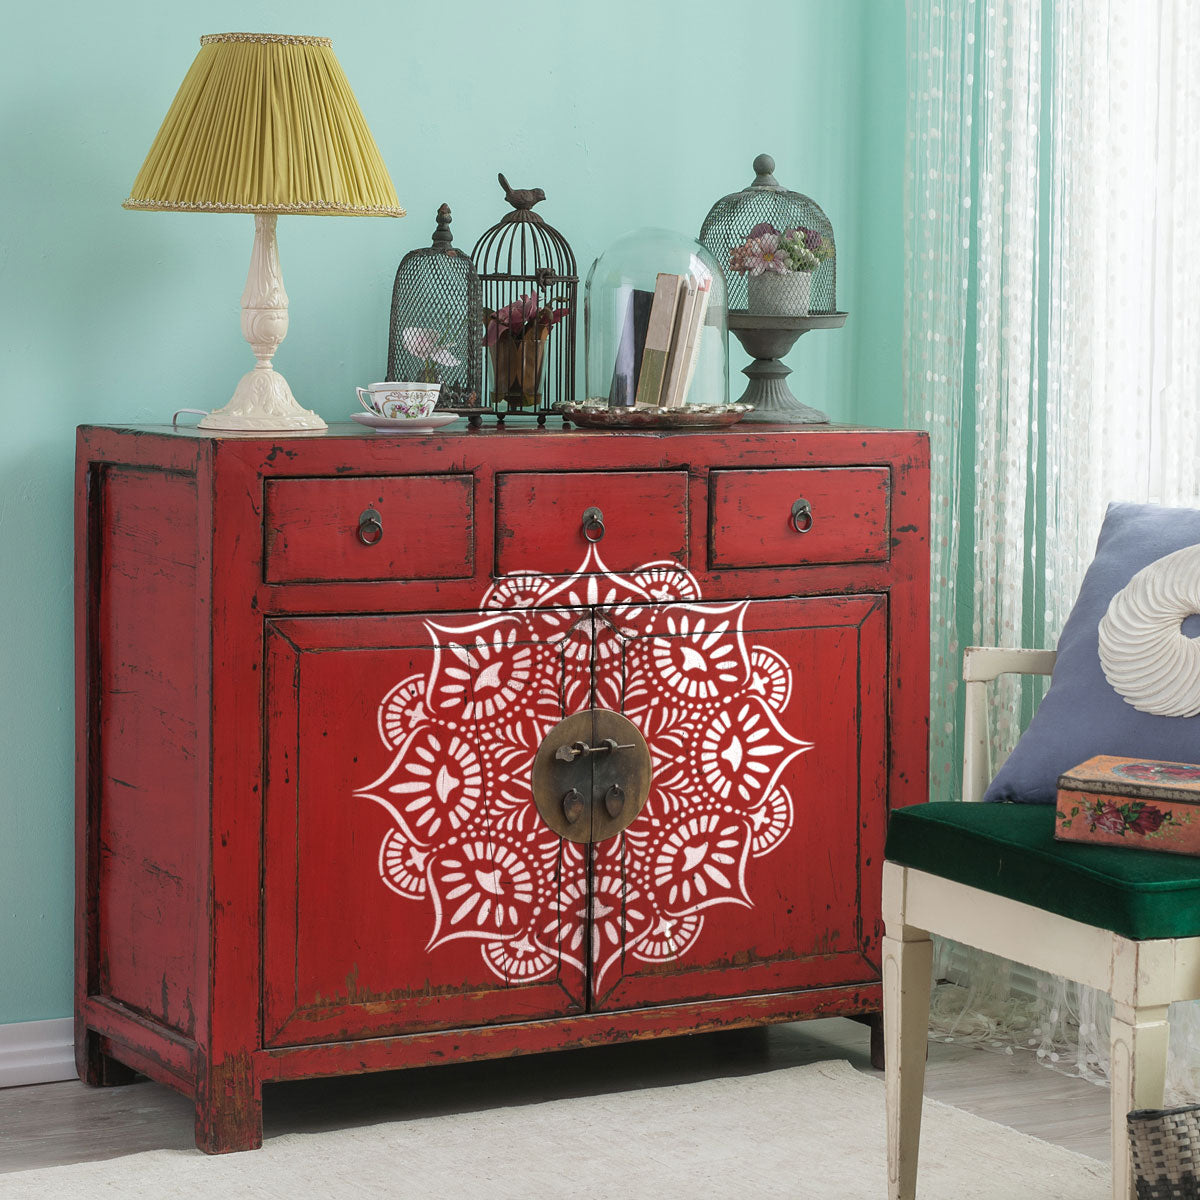 CraftStar Reflections Mandala Stencil - Eastern Inspired Furniture